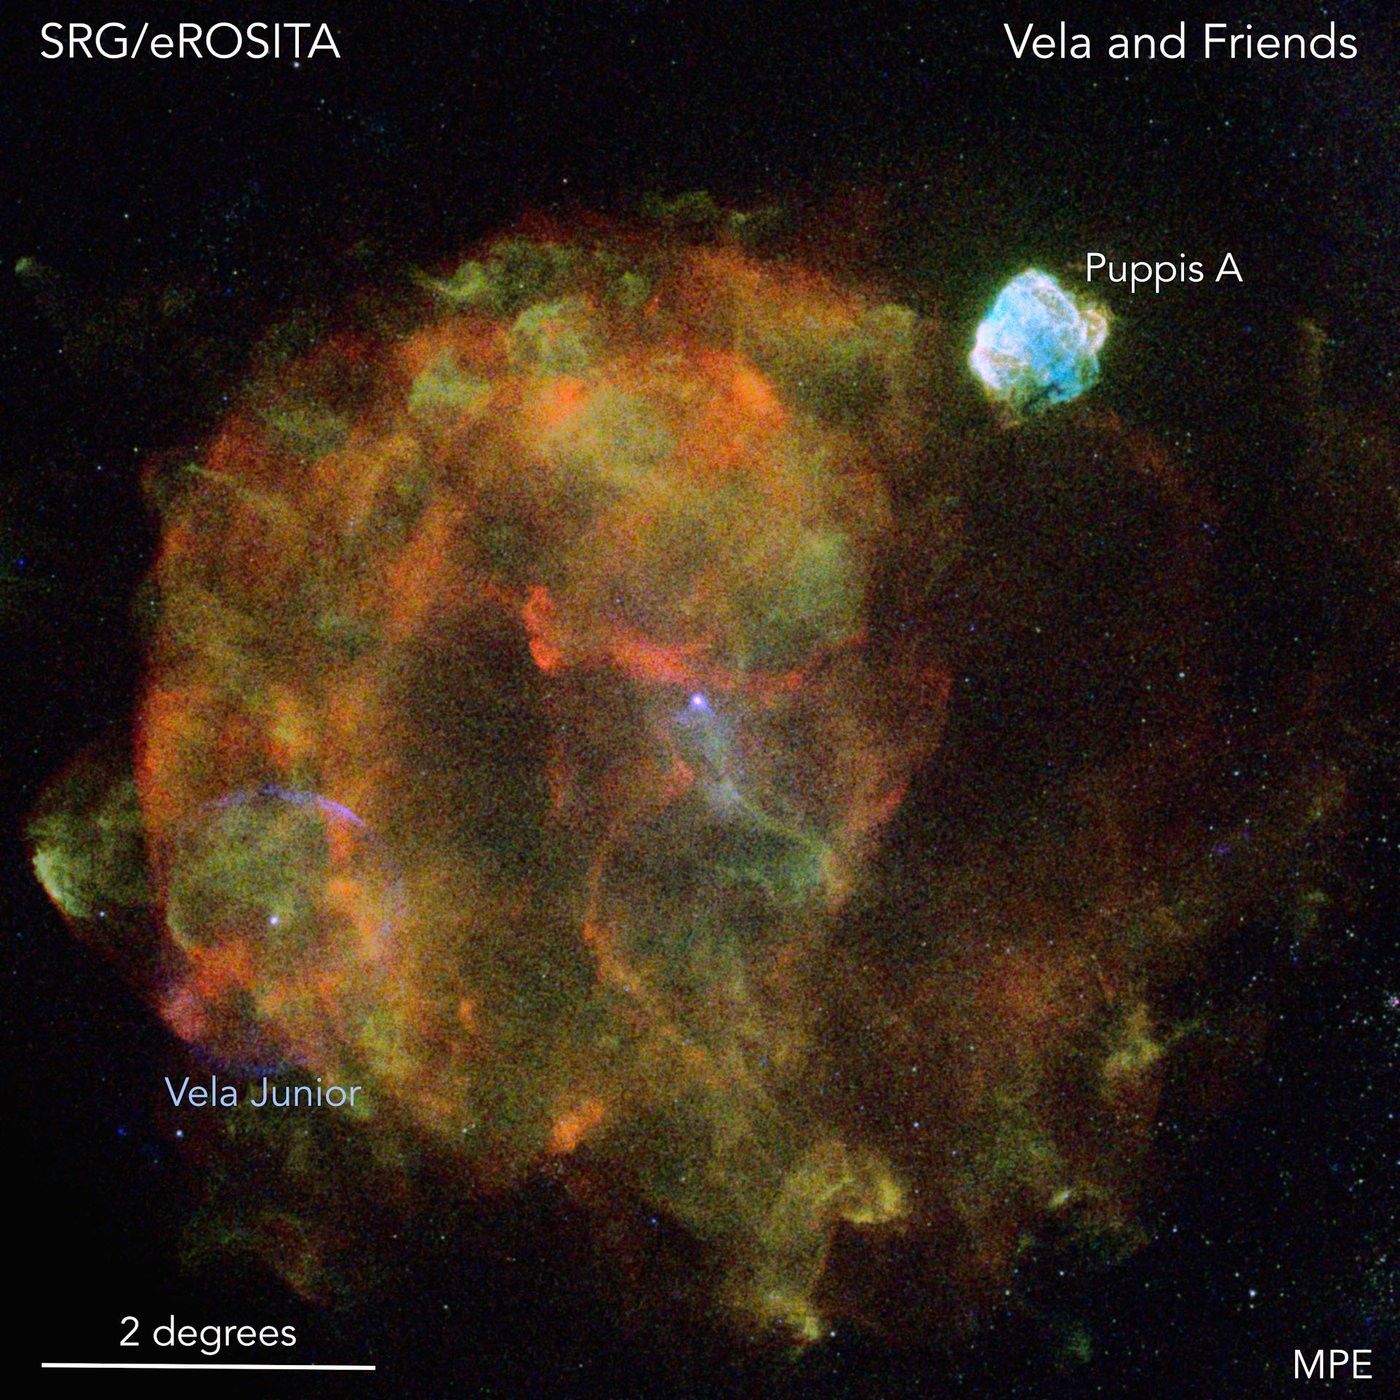 "Due to its size and close distance to Earth, the ""Vela supernova remnant"" which is shown in this picture is one of the most prominent objects in the X-ray sky. The Vela supernova exploded about 12000 years ago at a distance of 800 light-years and overlaps with at least two other supernova remnants, Vela Junior (in the picture seen as bluish ring at the bottom left) and Puppis-A (top right). Vela Junior was discovered just 20 years ago, although this object is so close to Earth that remains of this explosion were found in polar ice cores. All three supernova explosions produced both the X-ray-bright supernova remnants and neutron stars, which shine as intense X-ray point sources near the centres of the remnants. The quality of the new eROSITA data of this ""stellar cemetery"" will give astronomers many exciting new insights into the physical processes operating in the hot supernova plasma as well as for exploring the exotic neutron stars. (Image: Peter Predehl, Werner Becker (MPE), Davide Mella)"